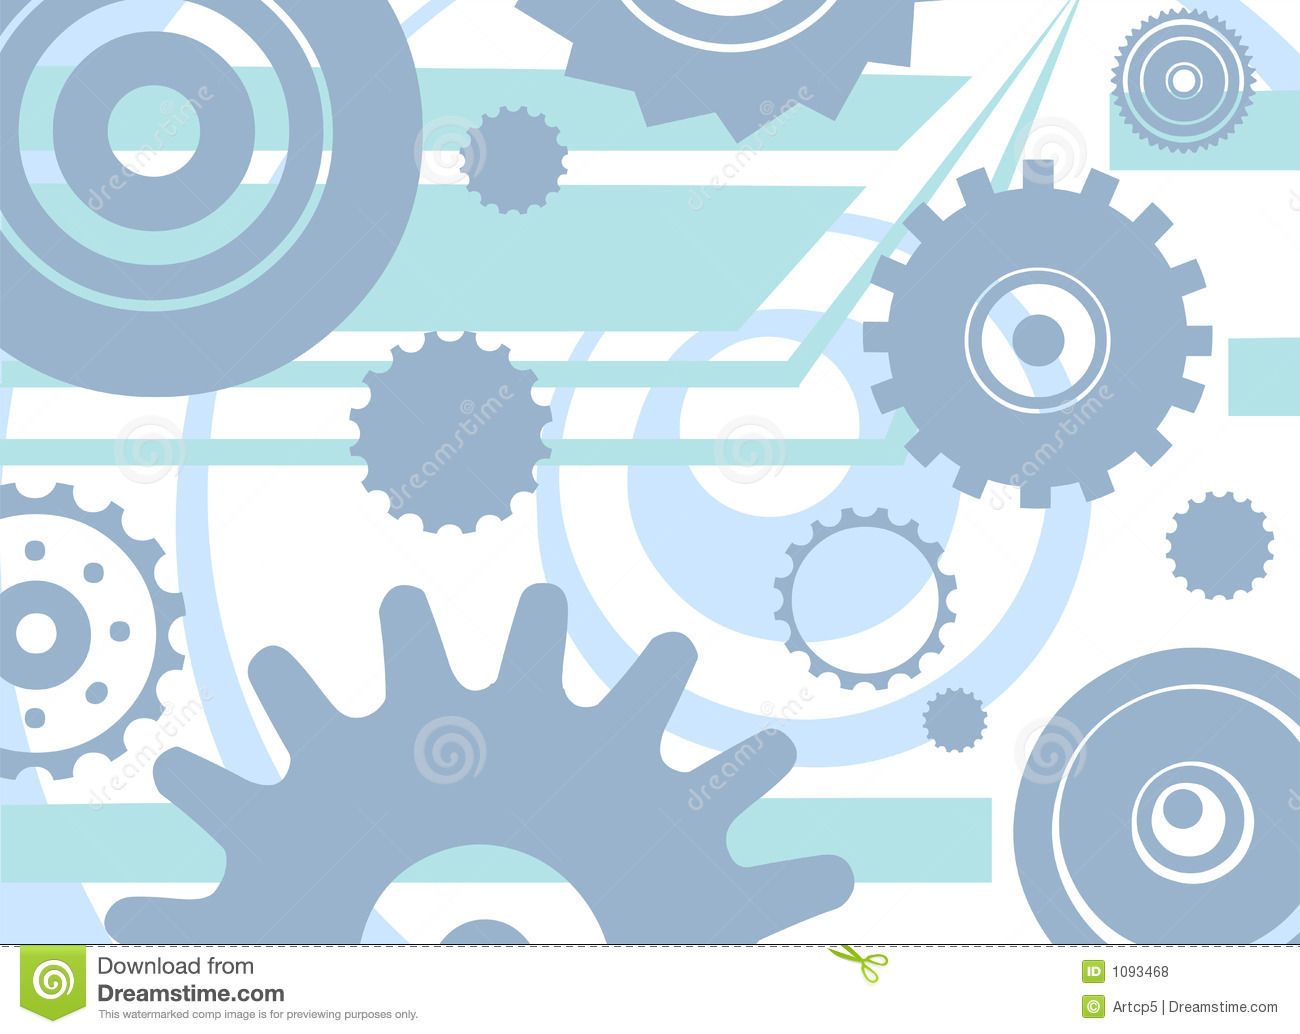 3d Animation Gif Wallpaper Gears Background Royalty Free Stock Photos Image 1093468